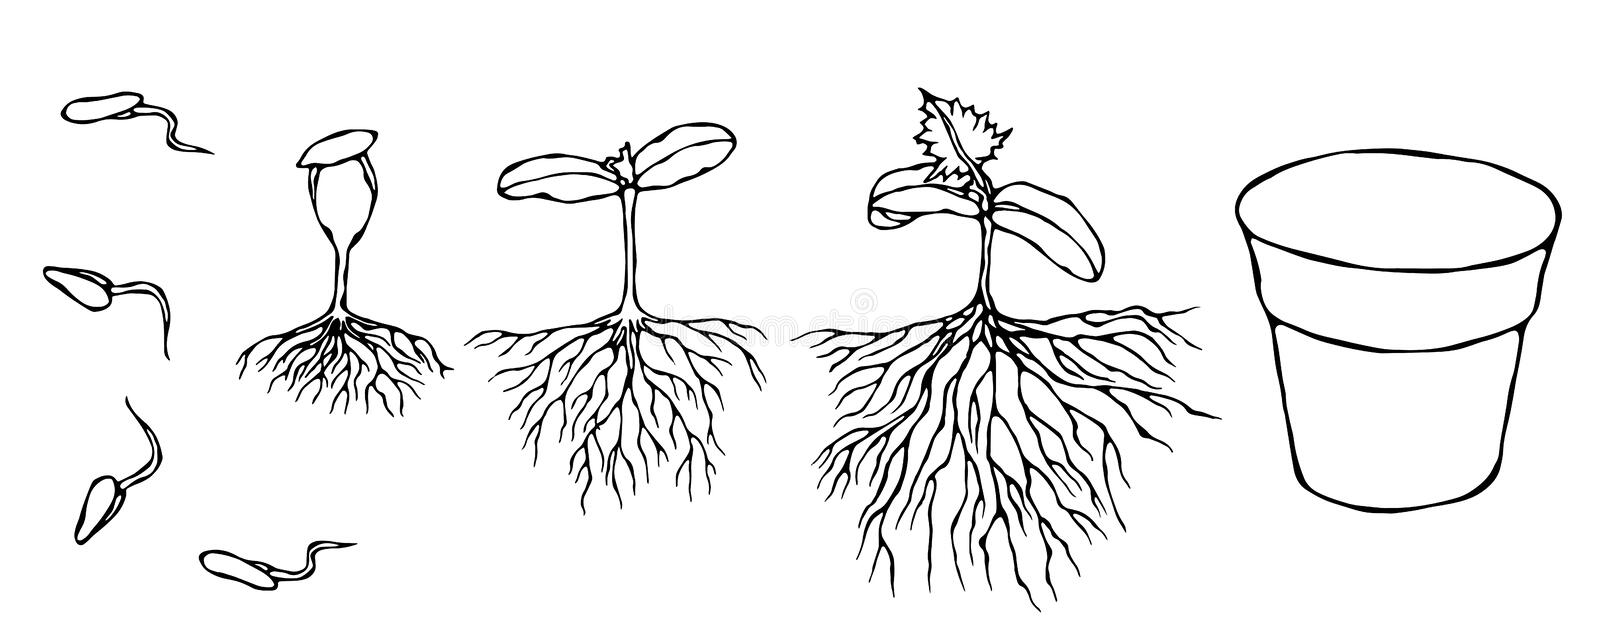 Vector Illustration of Germ and Seeds Sprout with Roots in Ground. Seedling, Shoot, Sapling Gardening Plant. Trees stock illustration